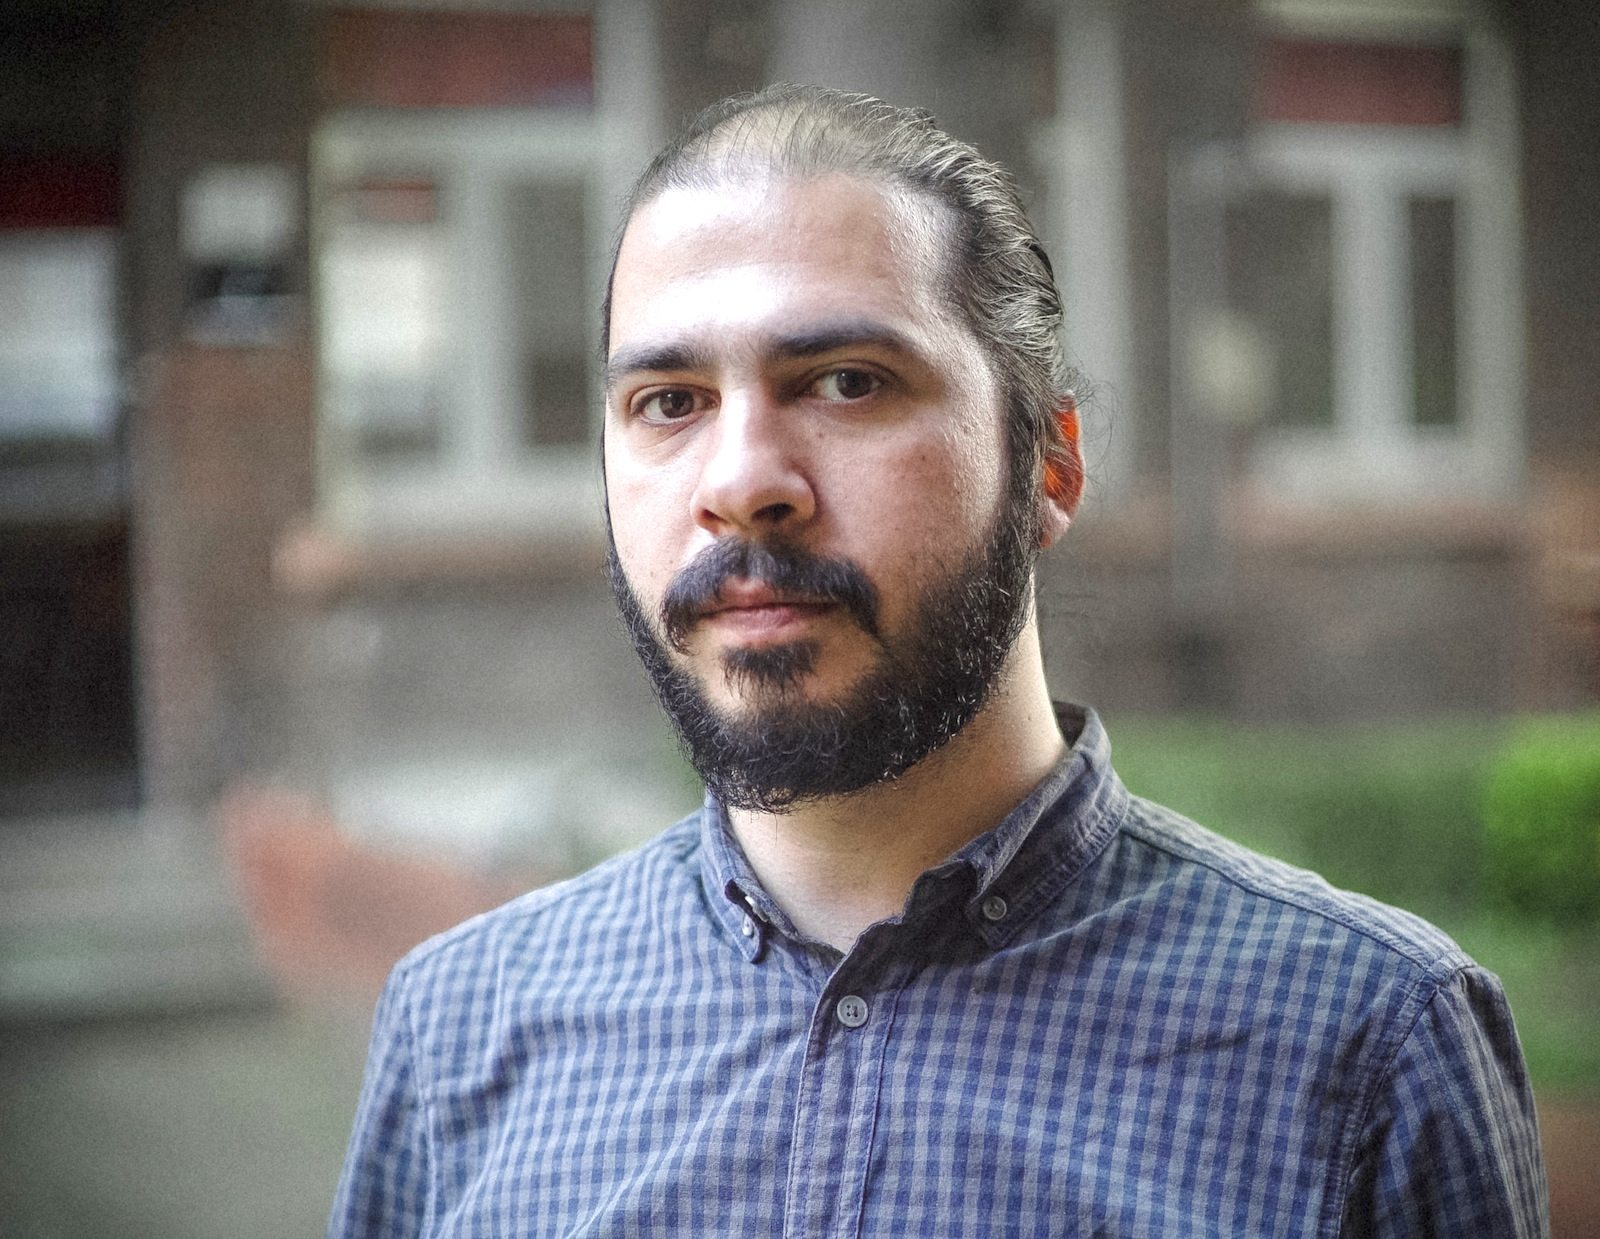 Waref Abu Quba. Filmmaker from Syria, in Darmstadt since 2011